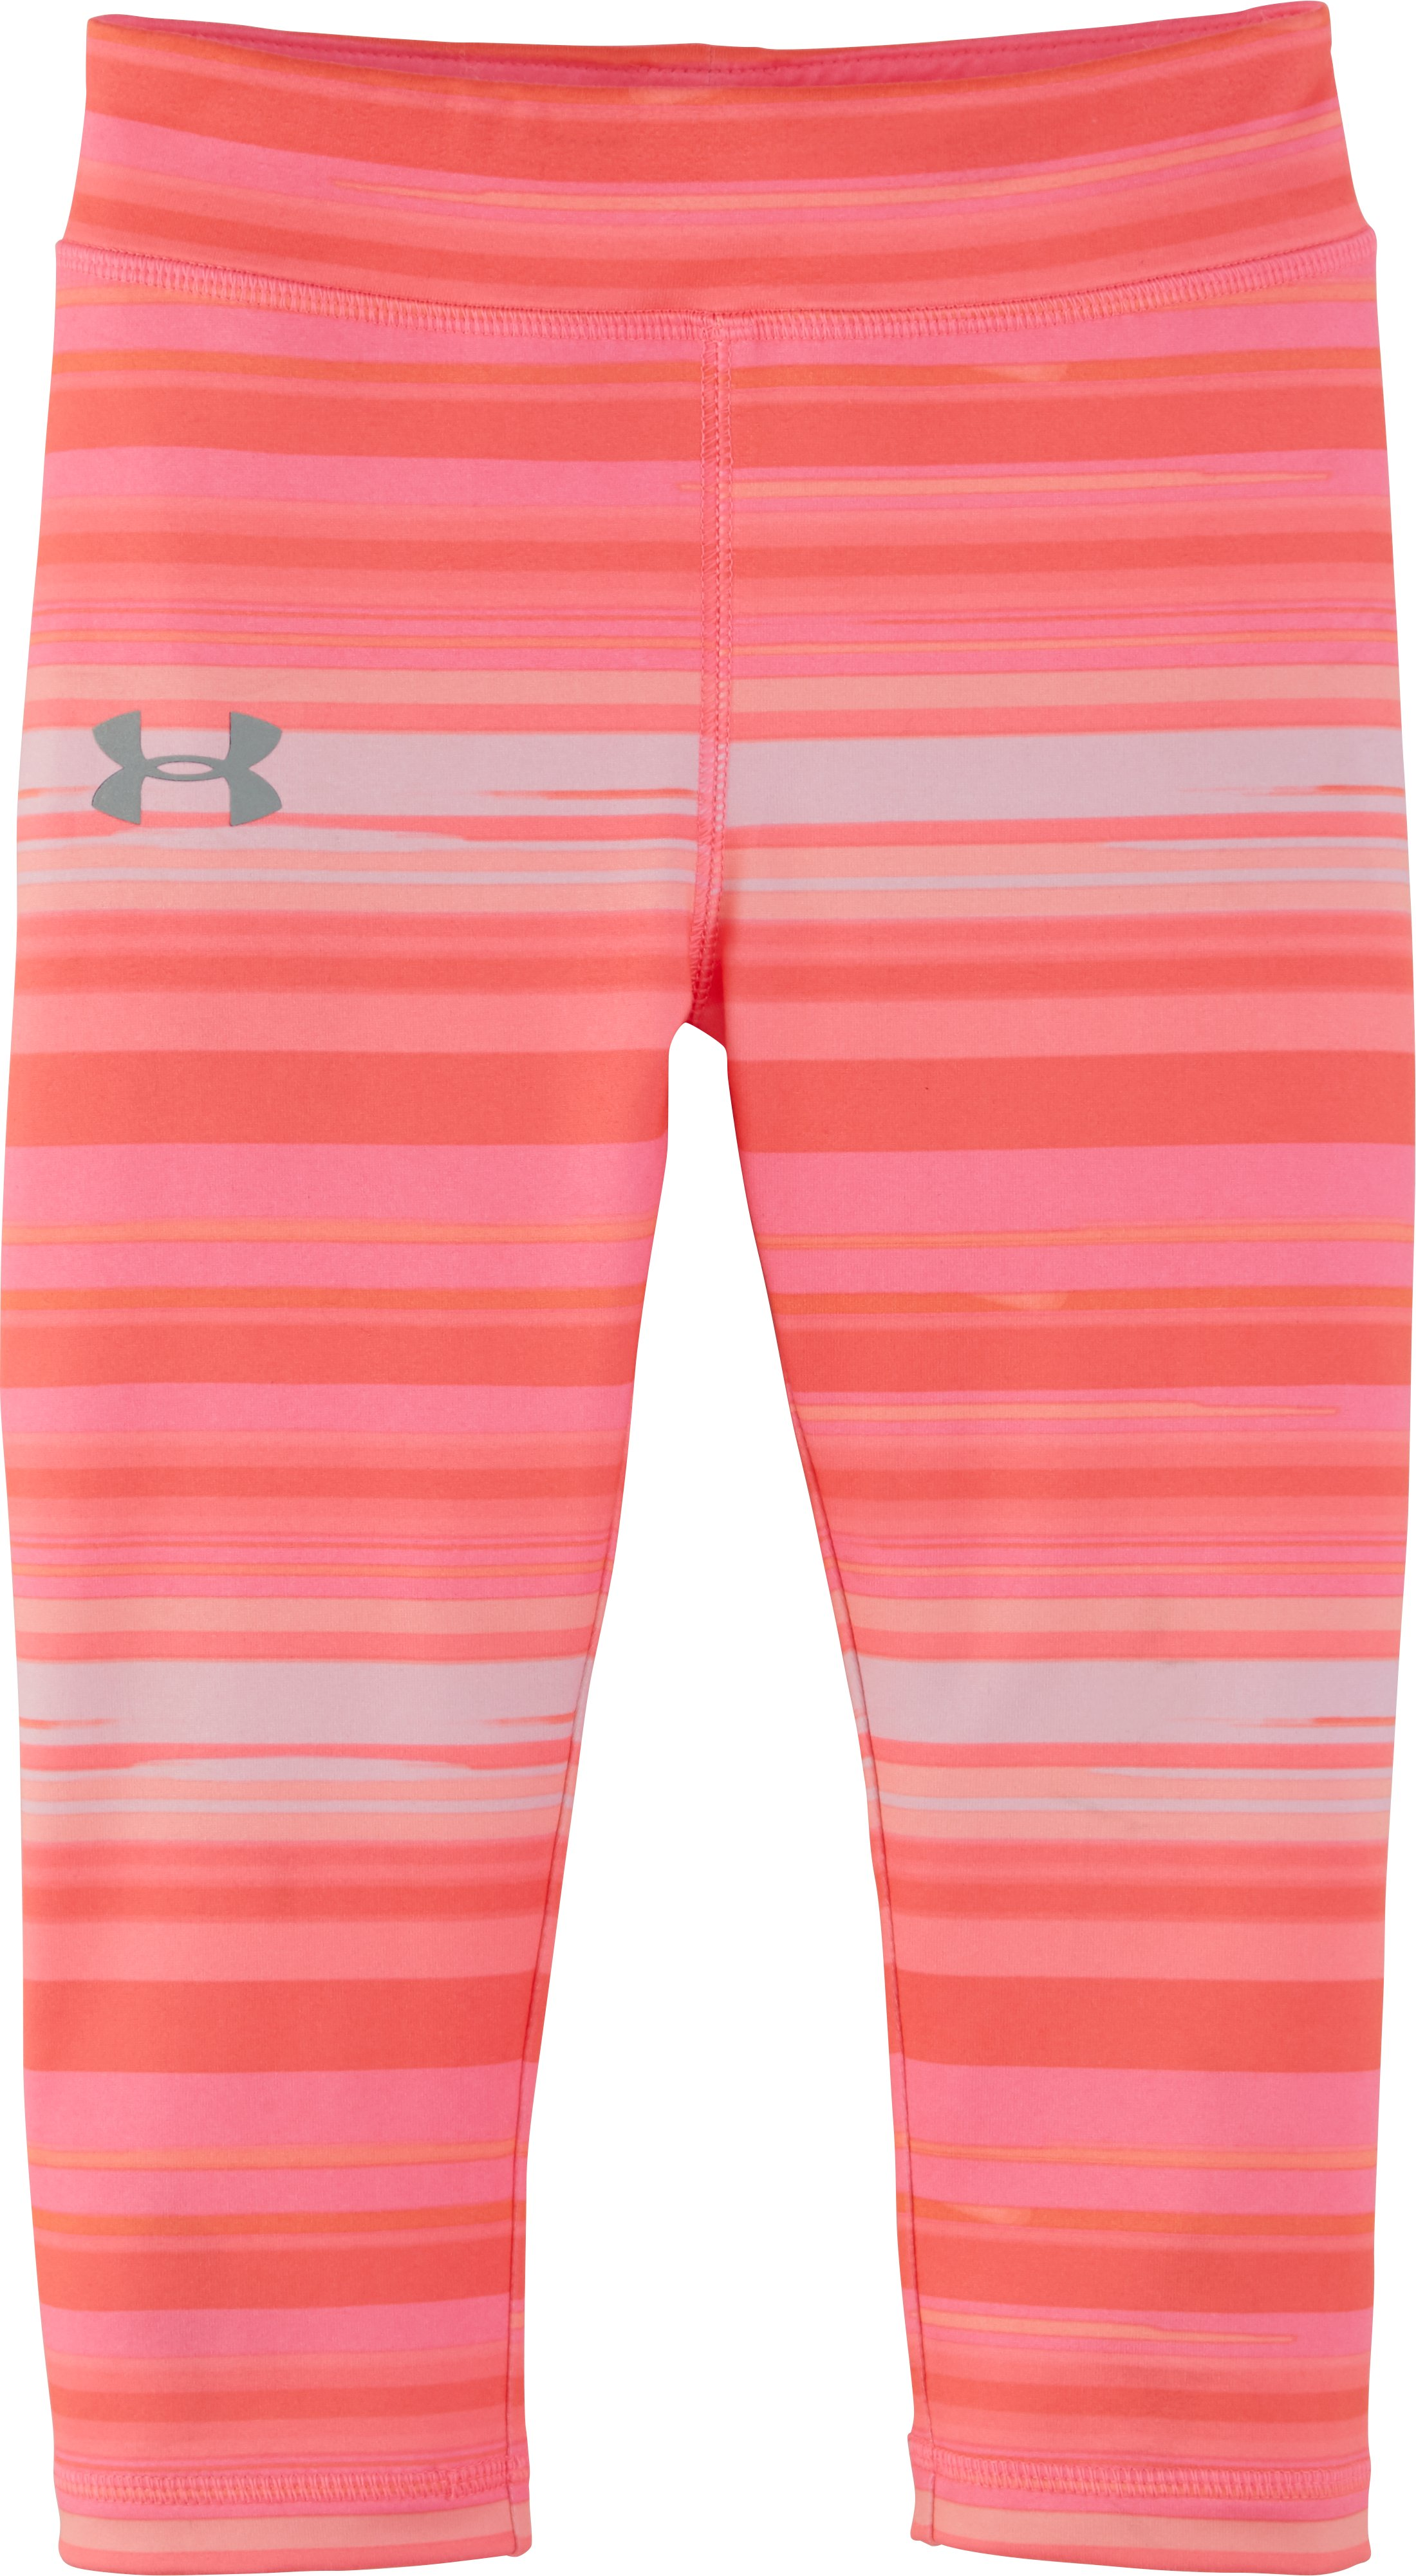 Girls' Toddler UA Blurred Stripe Capris, PINK CHROMA, zoomed image